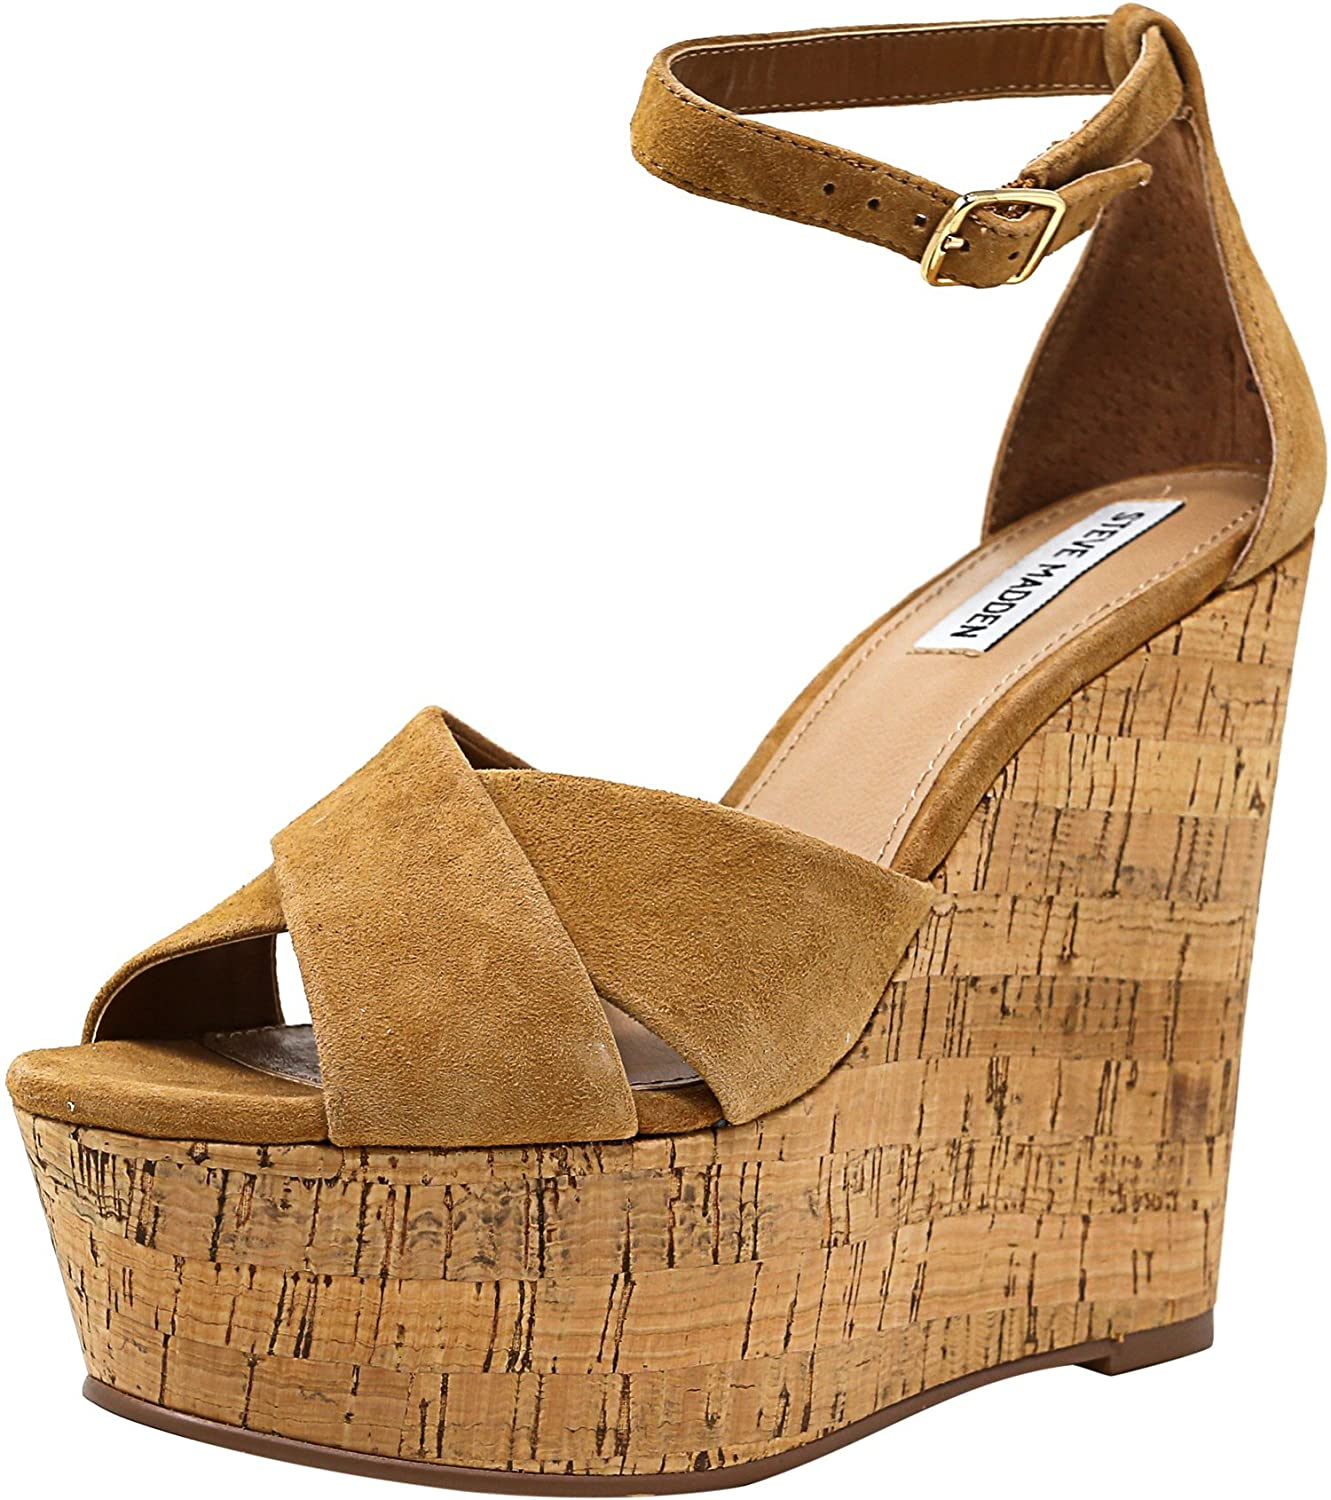 84d8a5bf52f Amazon.com   Steve Madden Women's Striking Suede Wedged Sandal ...